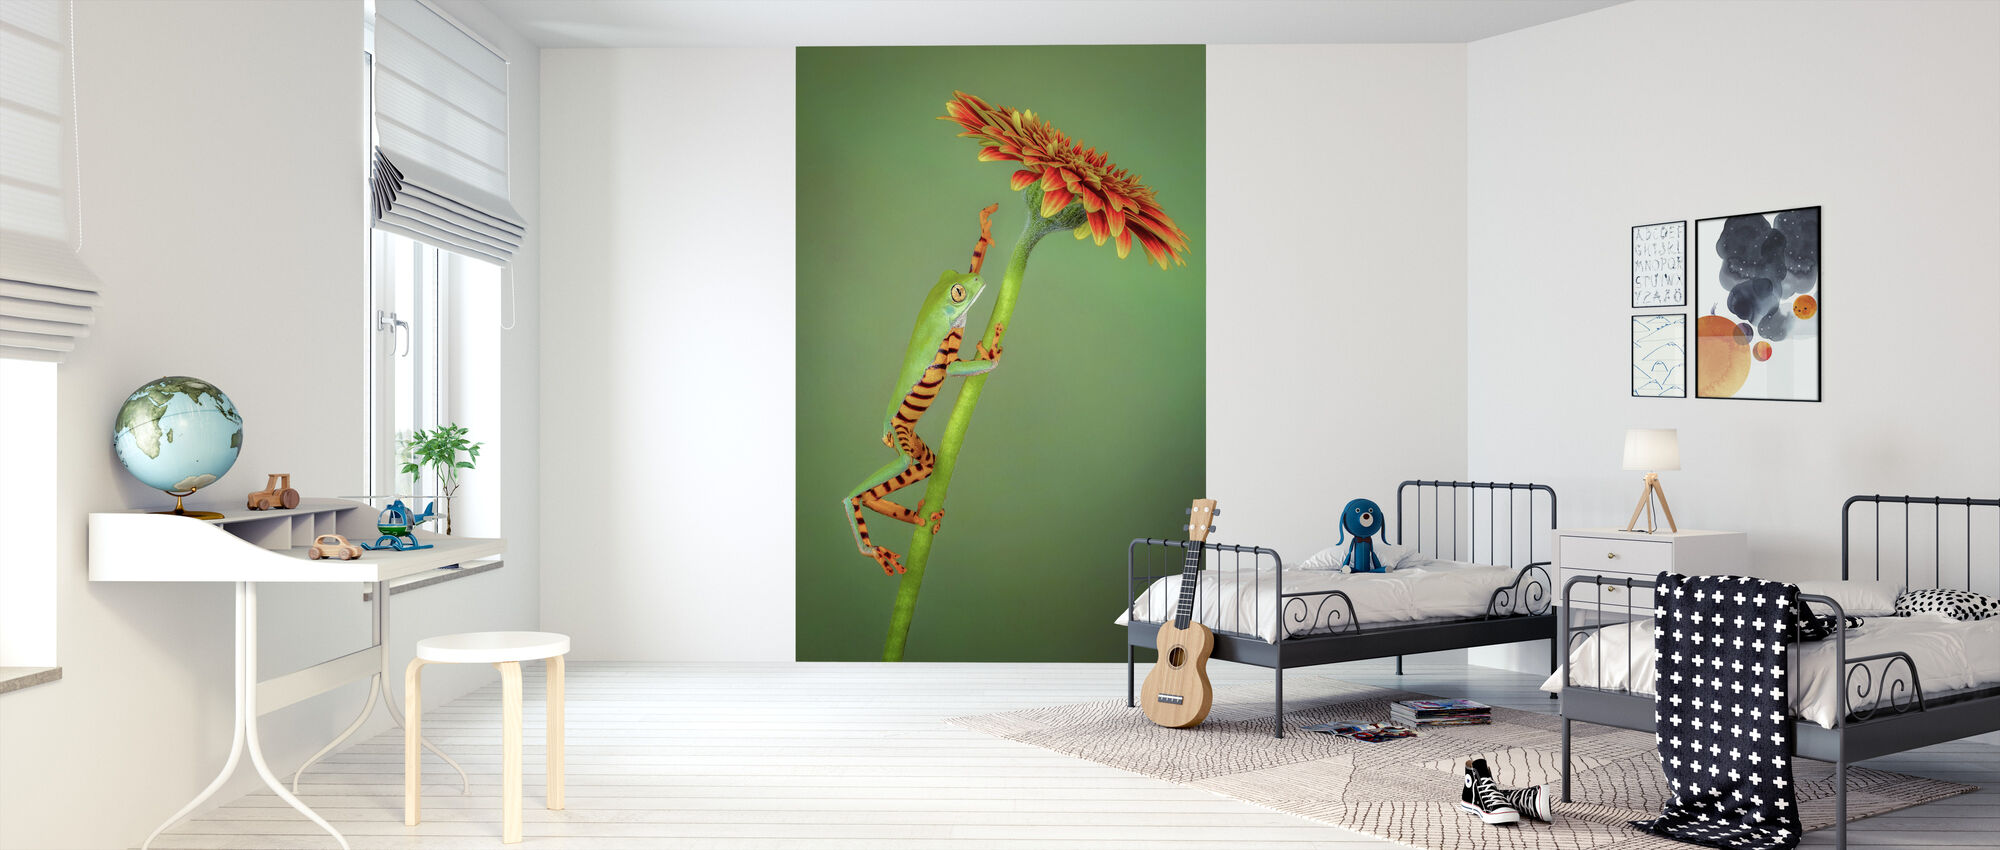 The Climber - Wallpaper - Kids Room